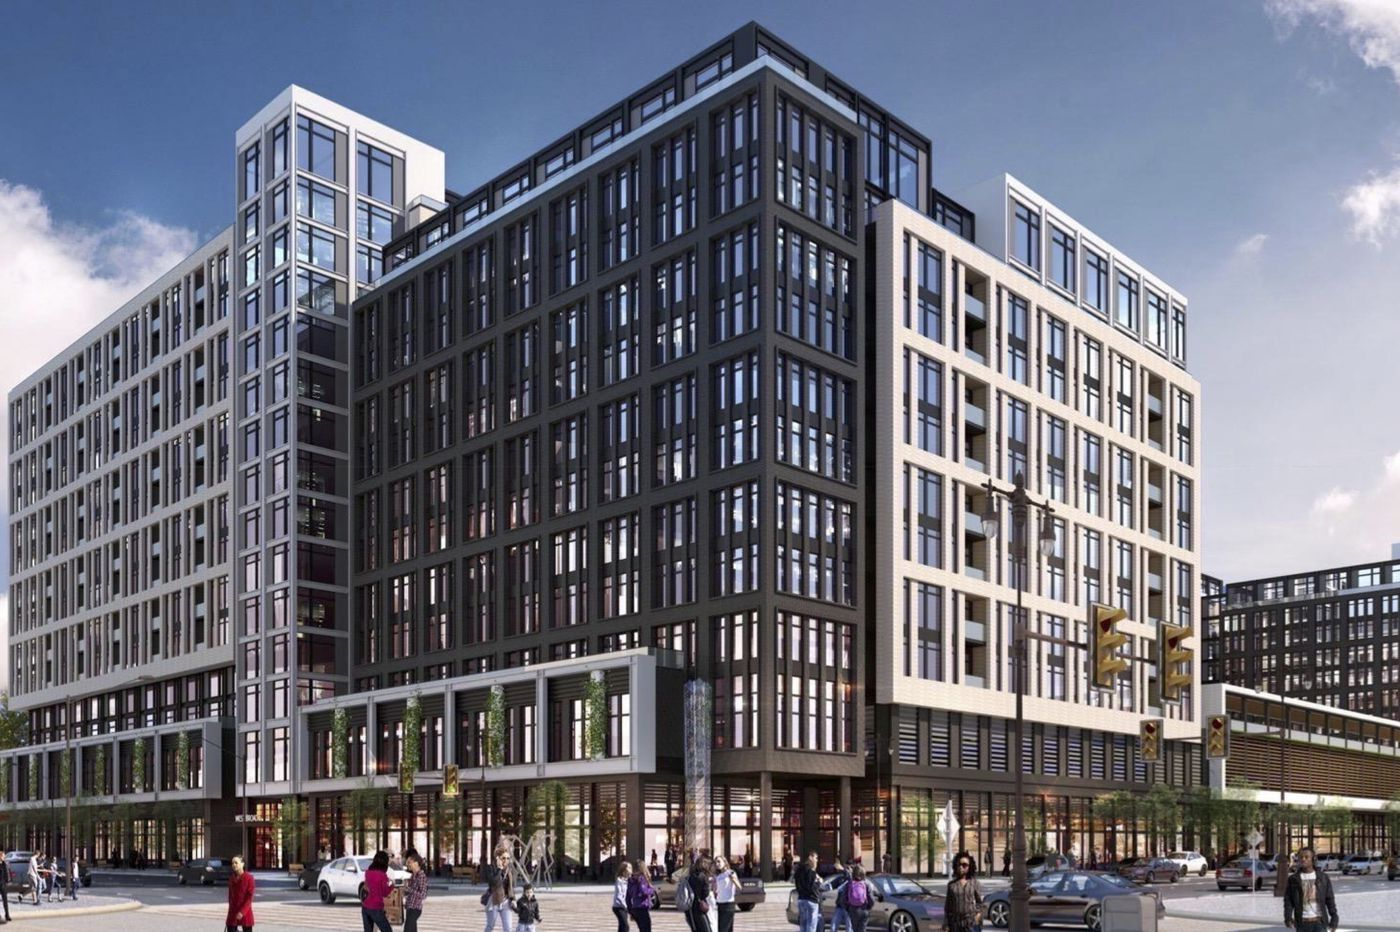 Newest plan for Blatstein's South Broad St. site calls for apartment towers over block-wide parking deck